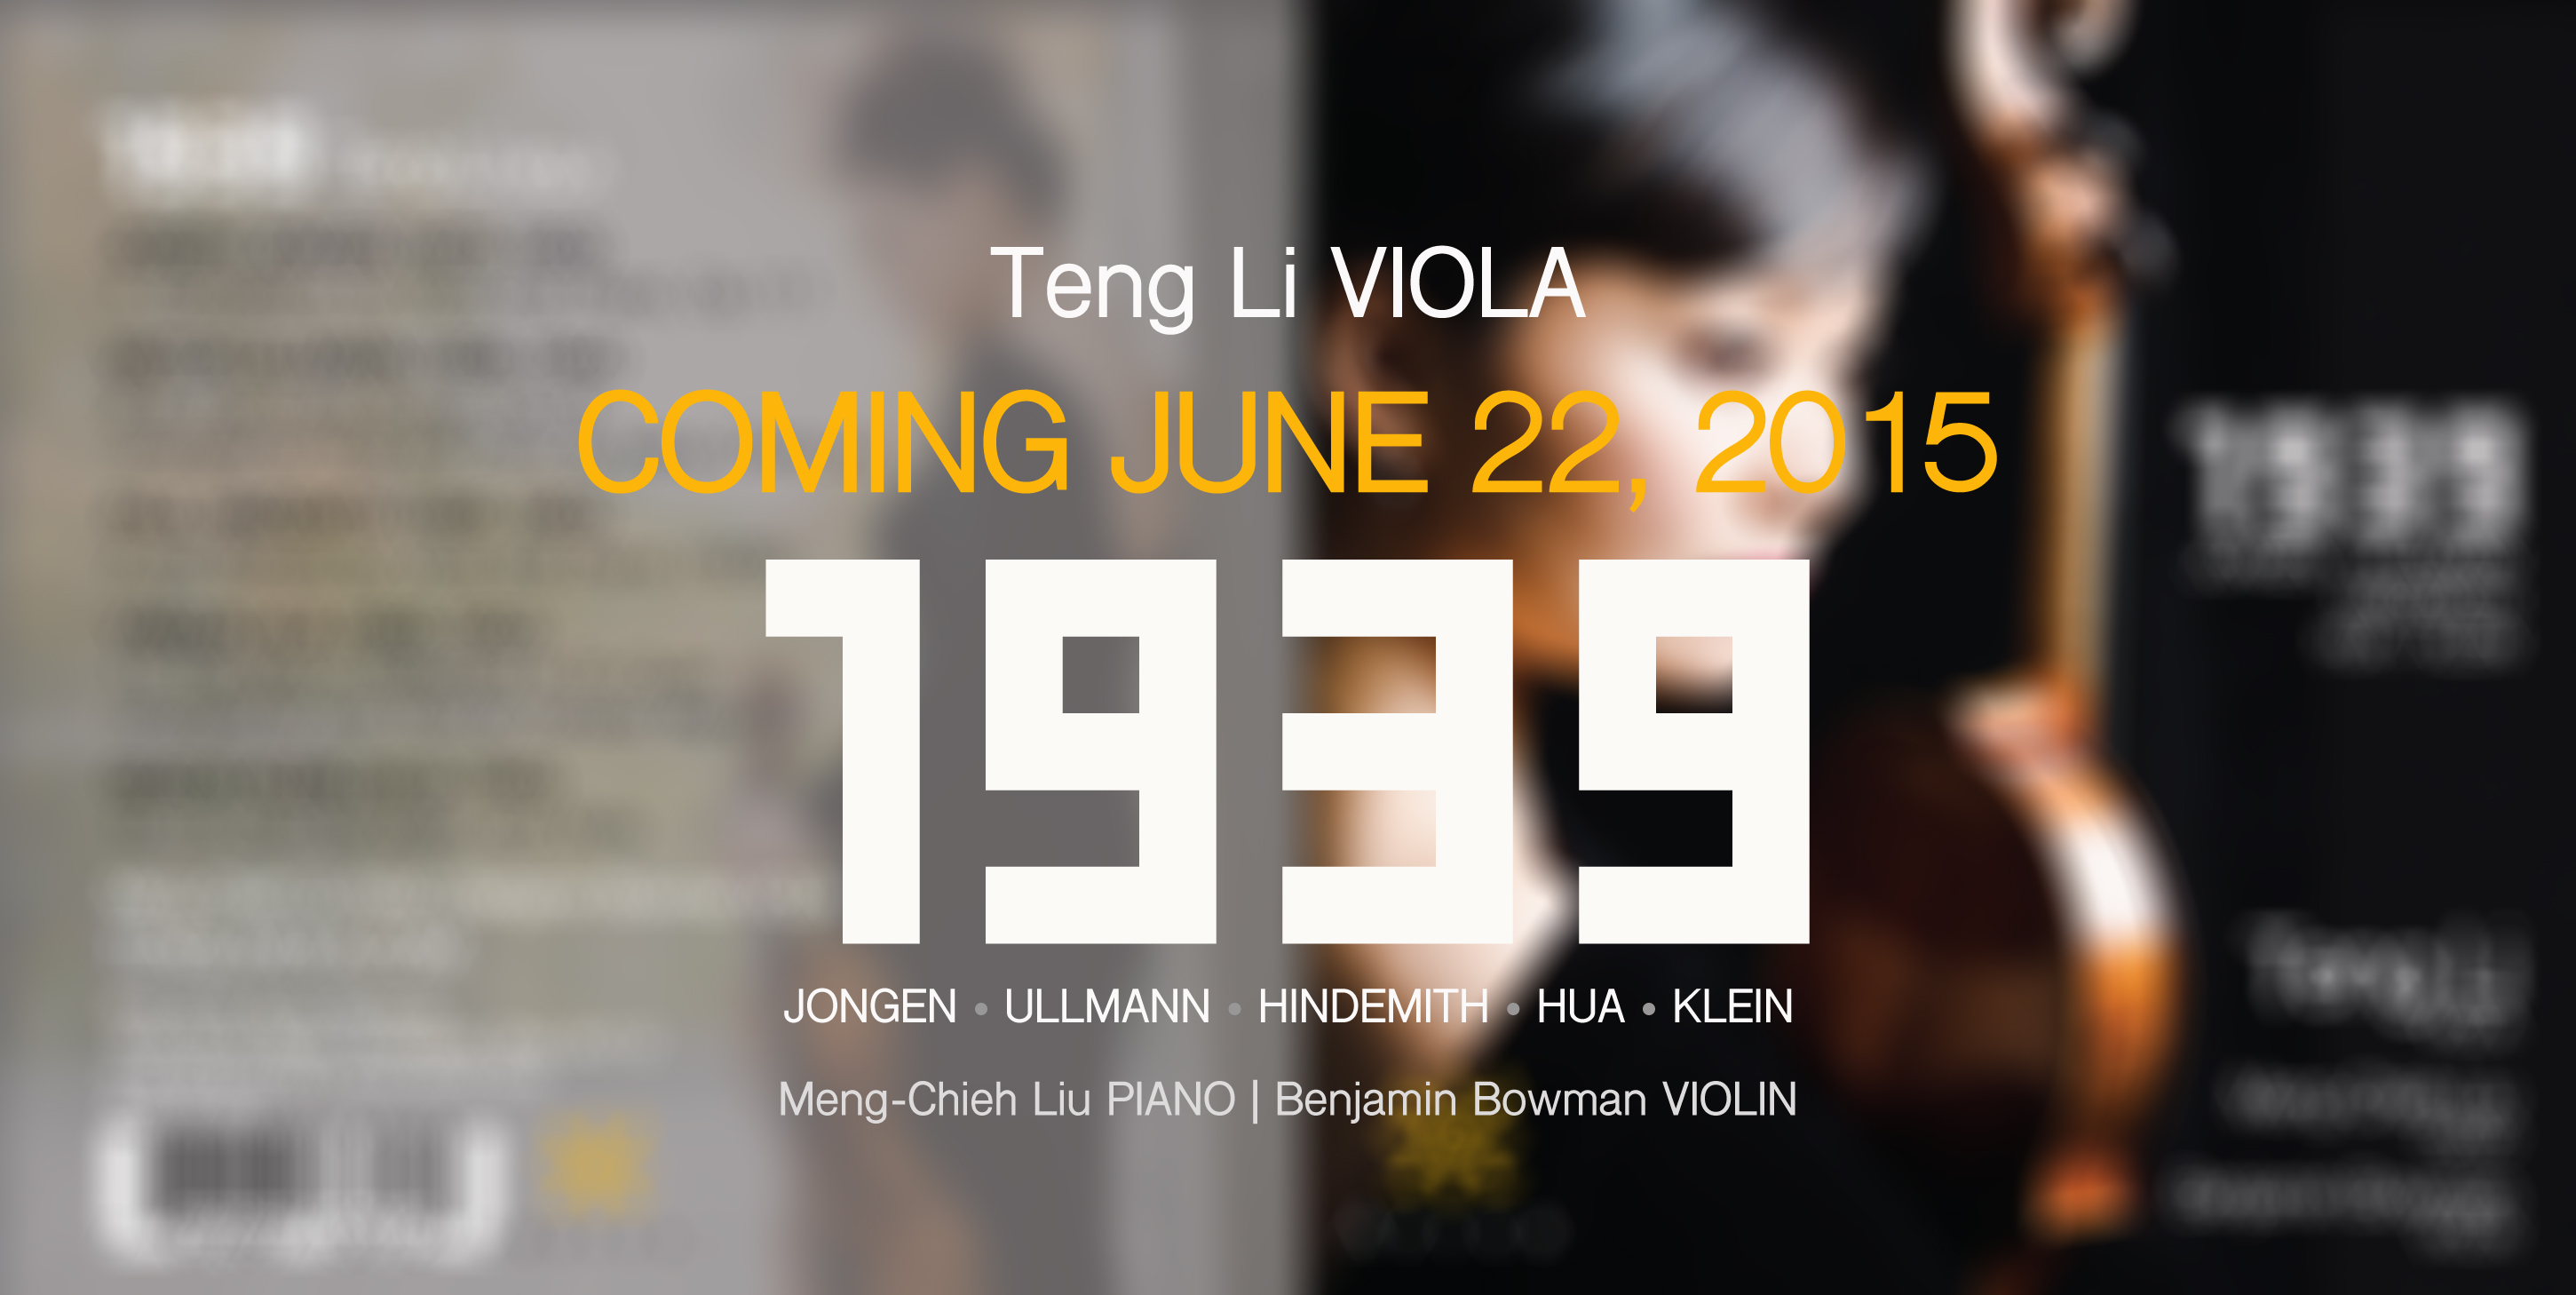 1939:  CD Release confirmed for June 22, 2015